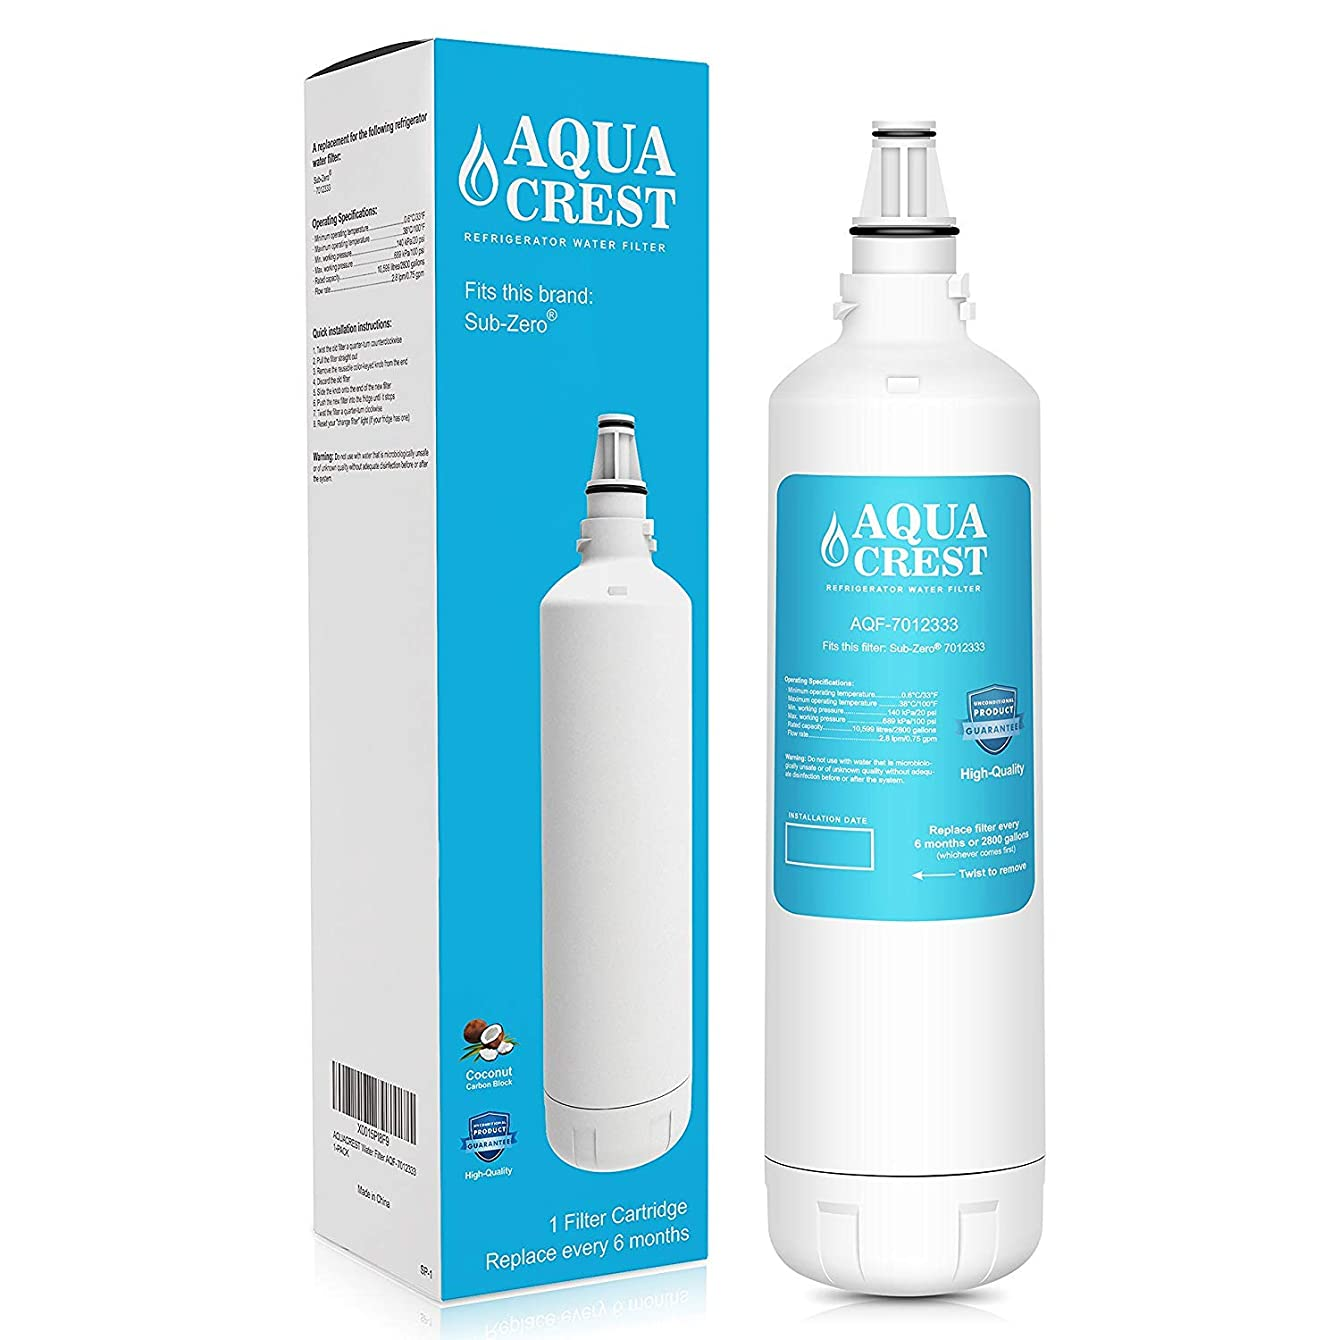 AQUACREST 7012333 Refrigerator Ice Maker Water Filter, Compatible with Sub-Zero 7012333 UC-15, Manitowoc K00374